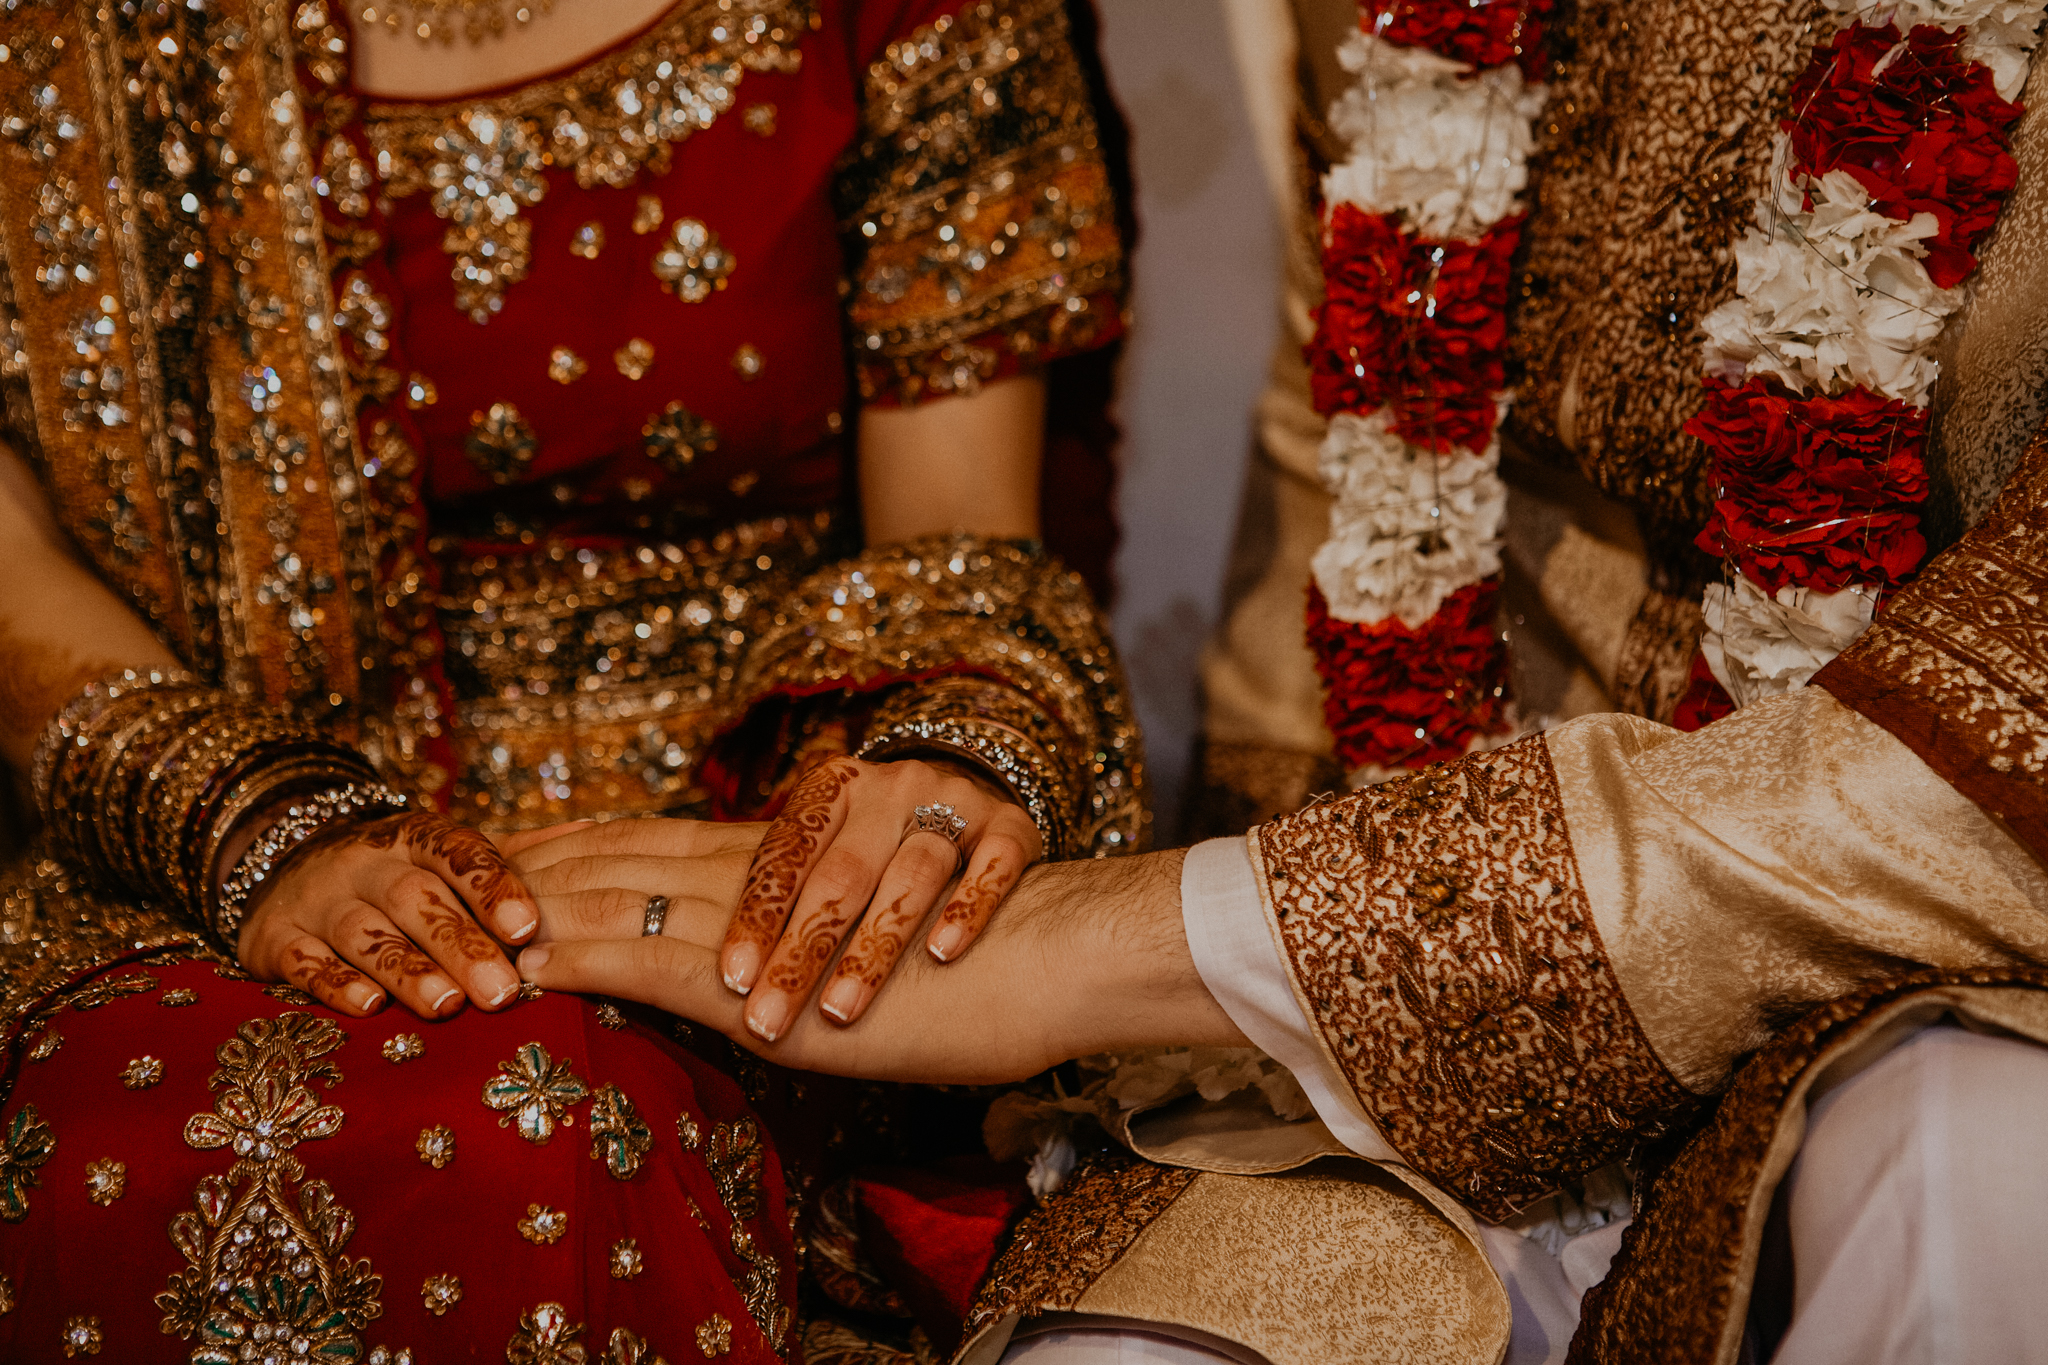 Close up of rings and bride and groom hands Indian wedding ceremony